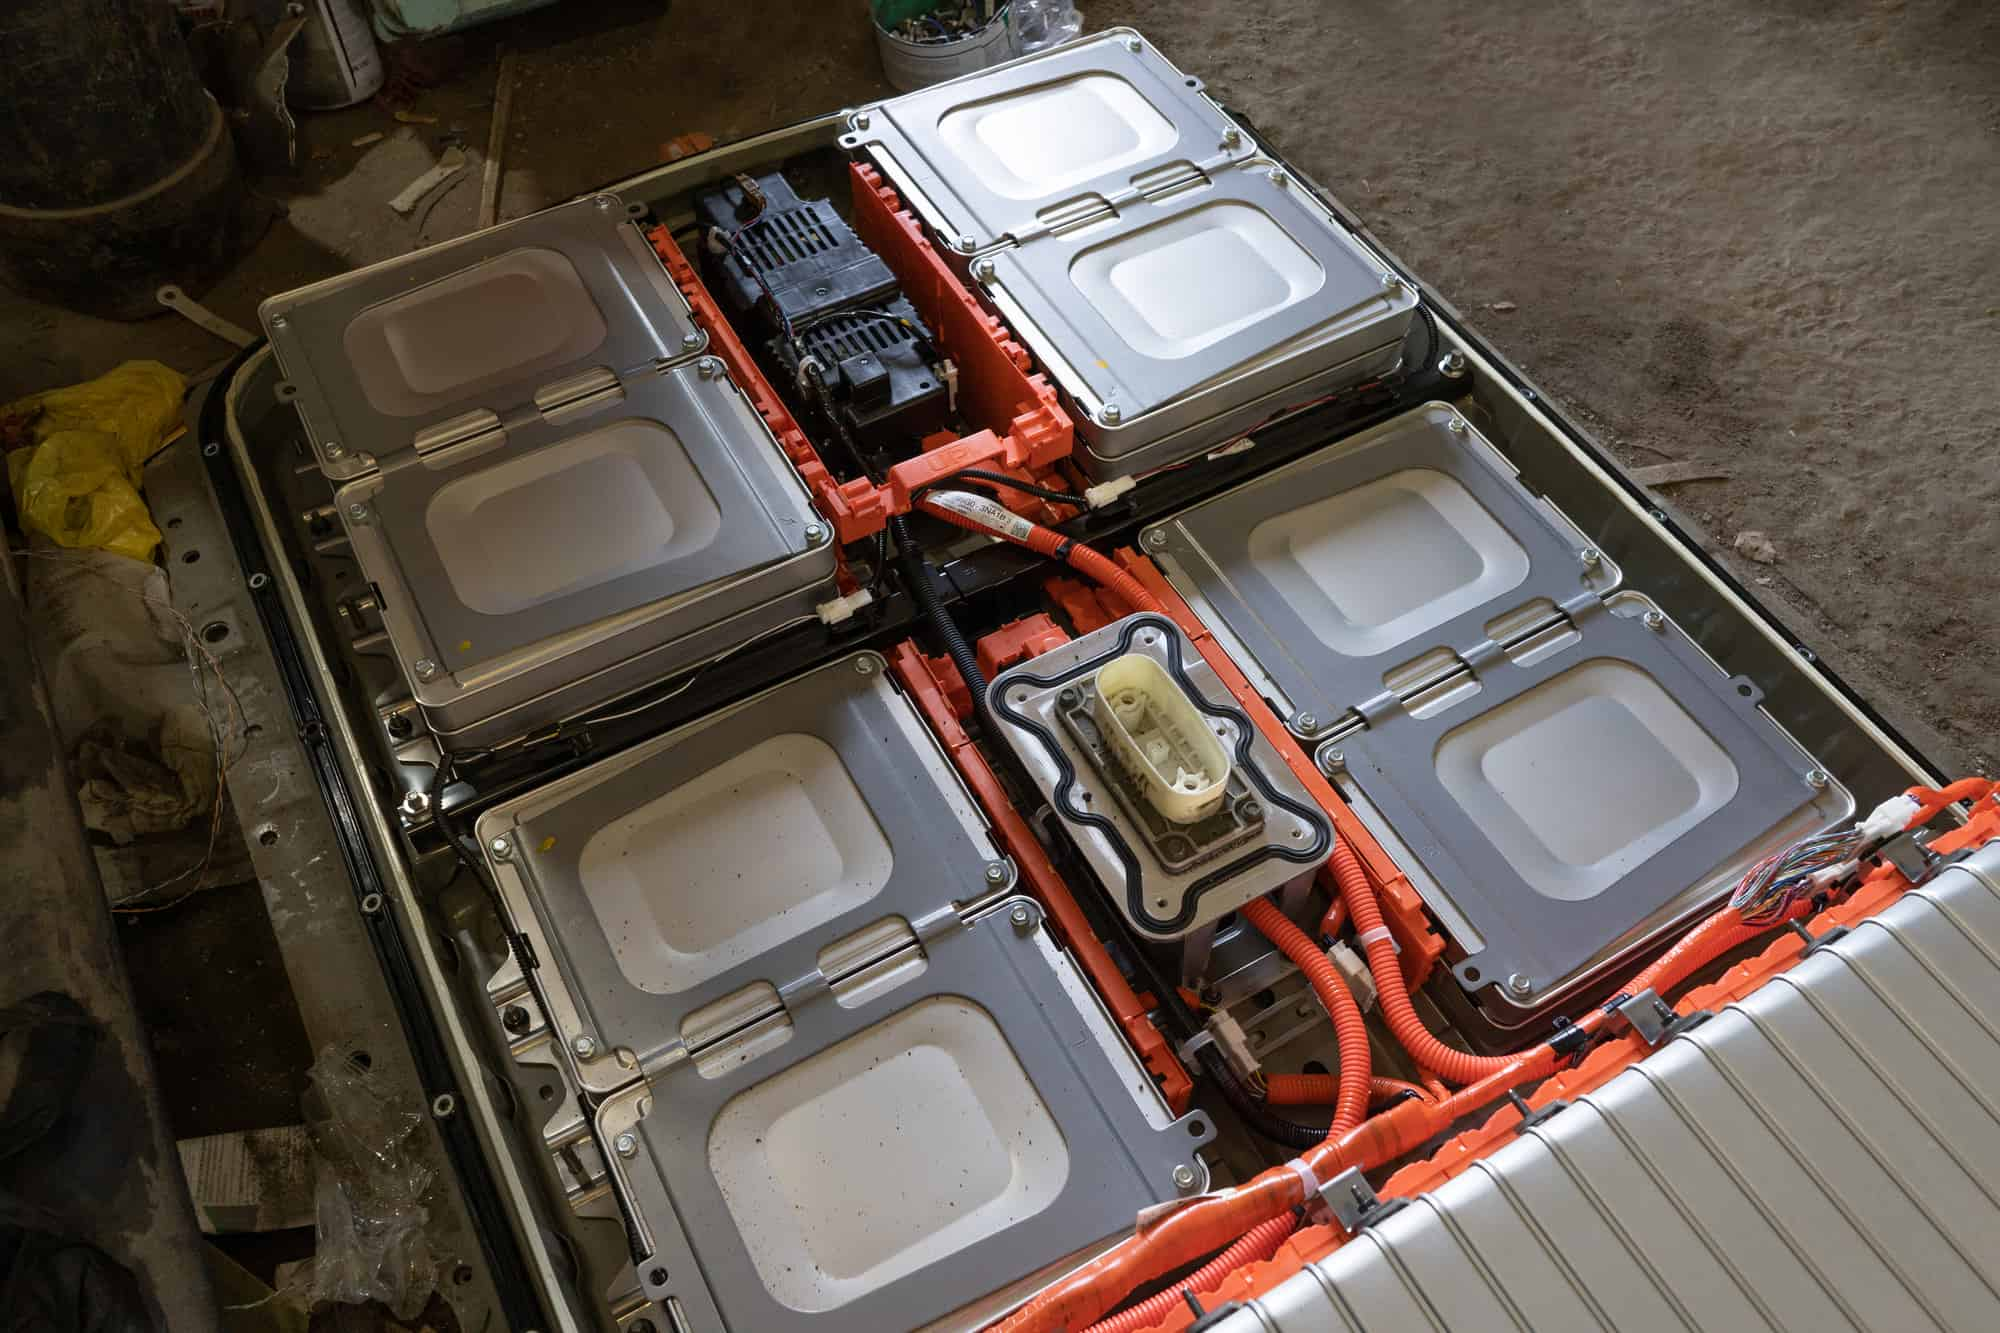 Demounted battery from electric car Nissan Leaf. Cells of high voltage battery from Kiev, Ukraine.